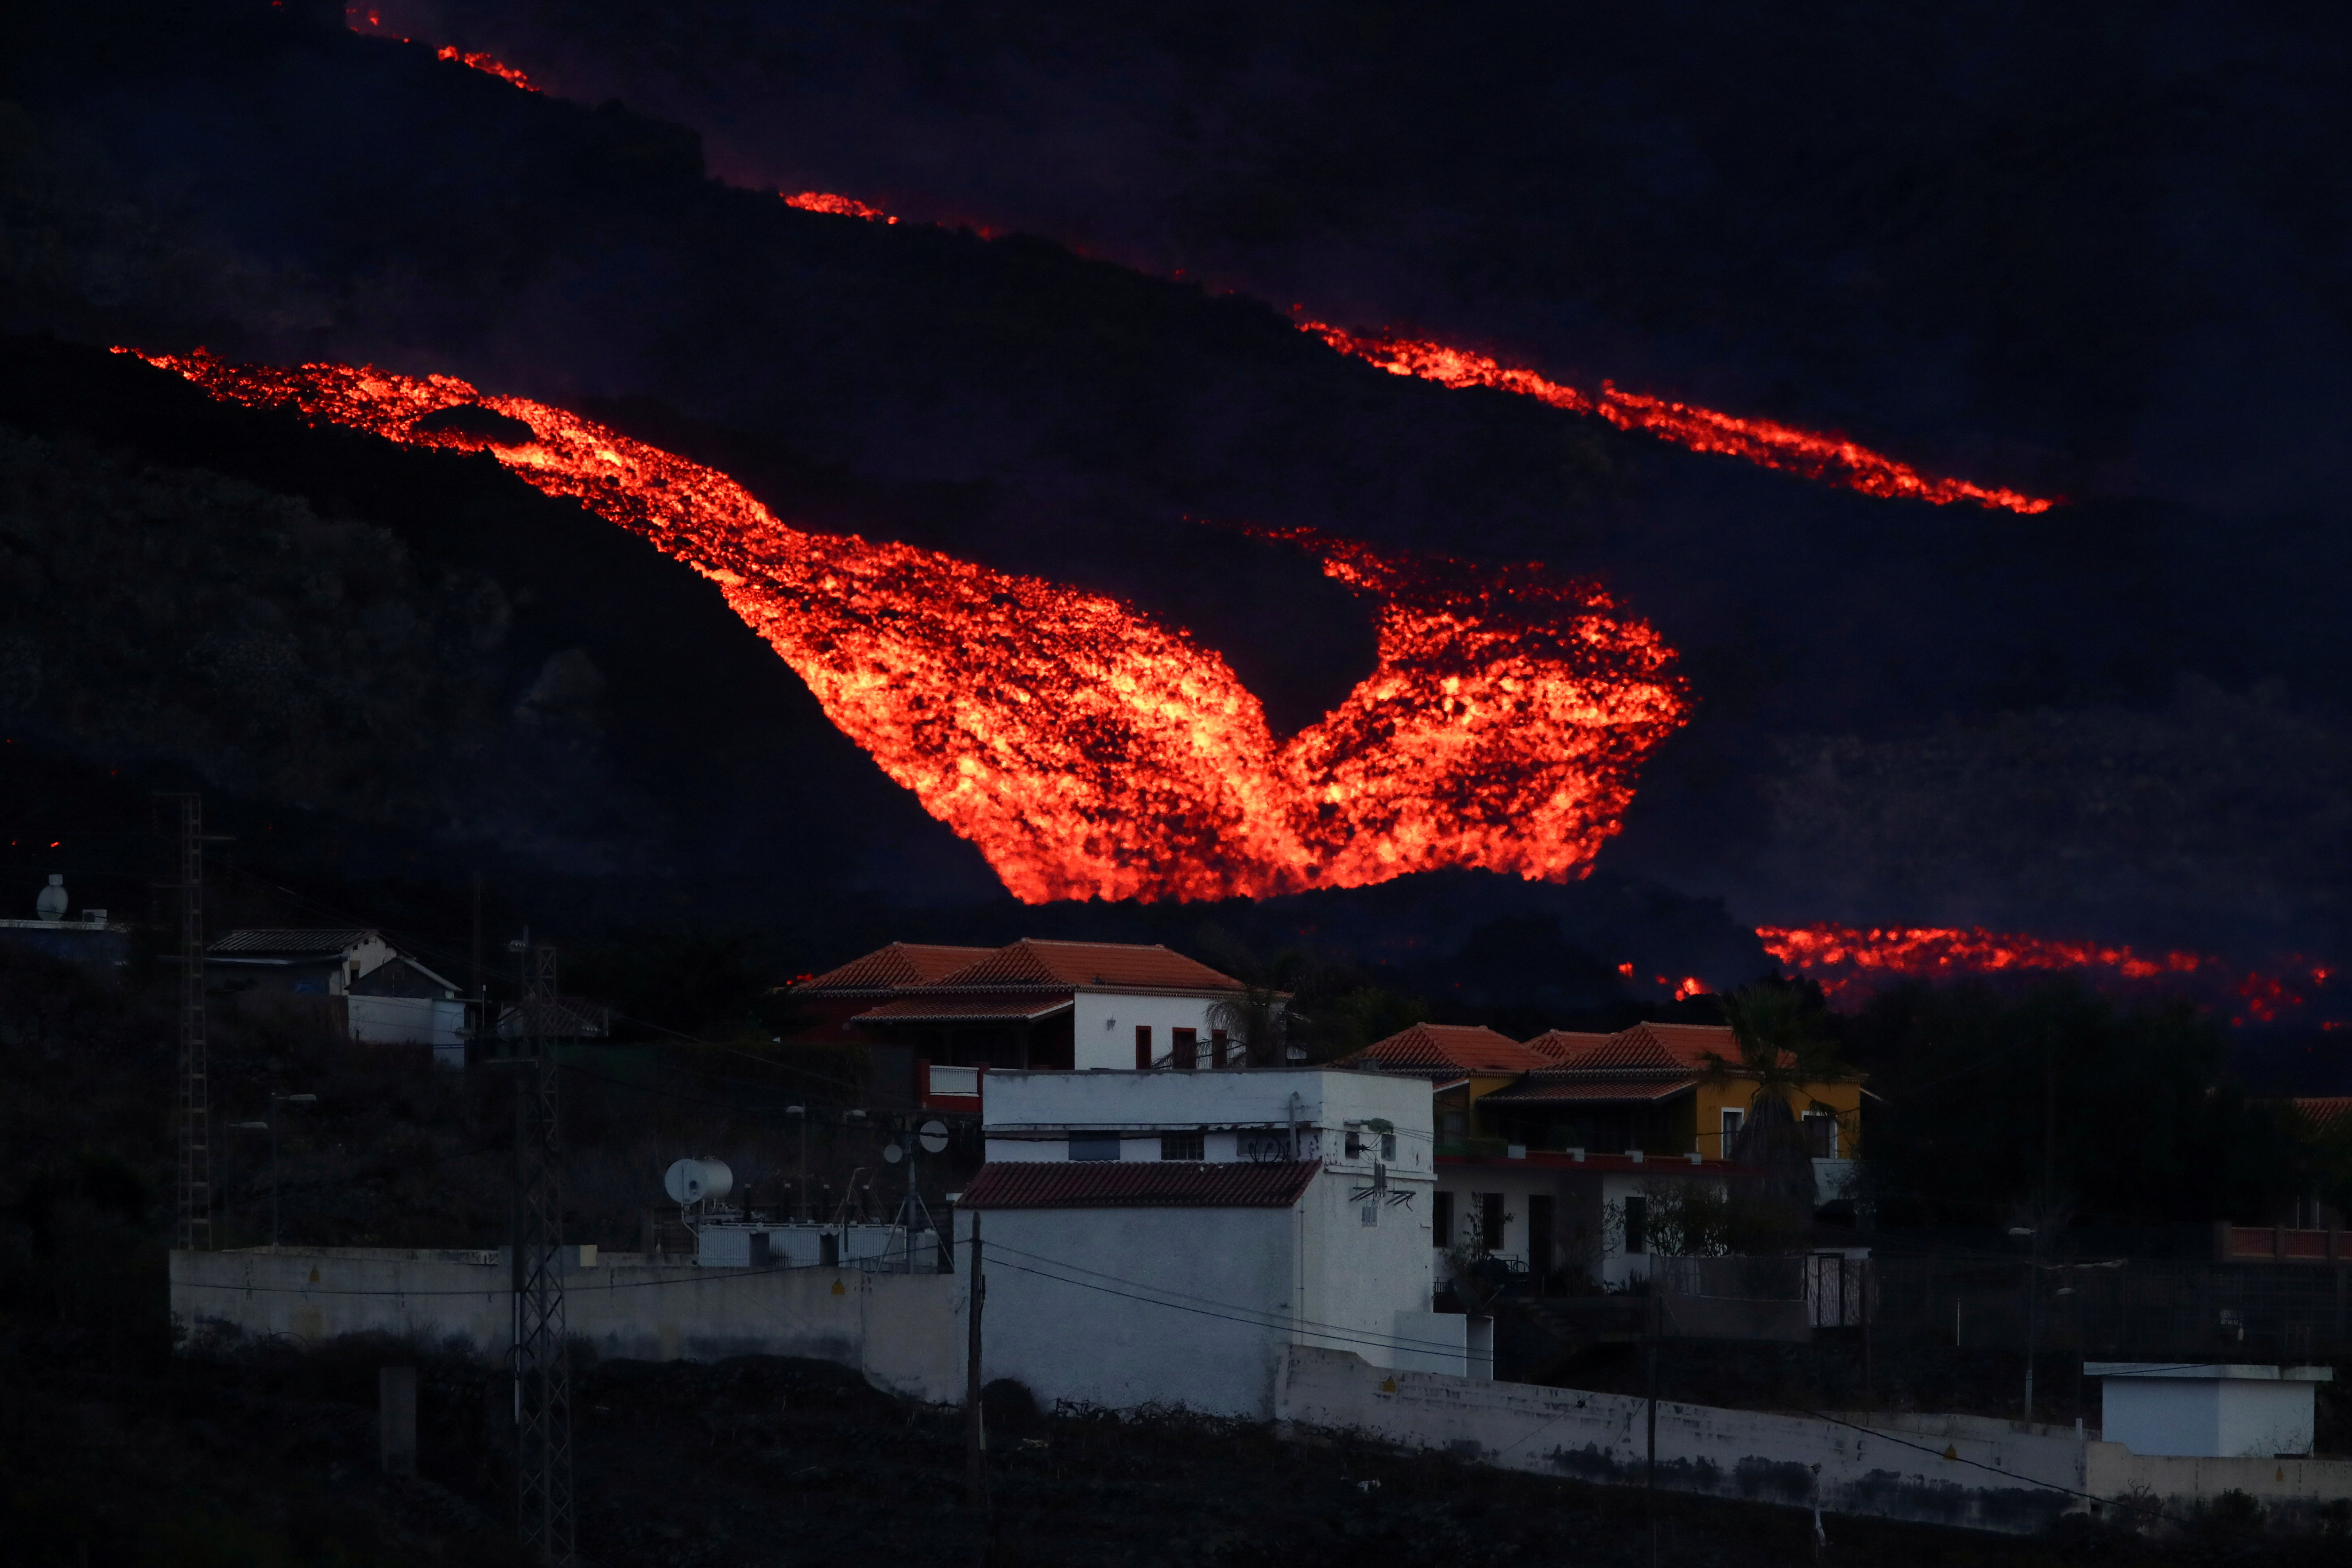 Lava flows down behind houses in Los Llanos as the Cumbre Vieja volcano continues to erupt on the Canary Island of La Palma, as seen from Tajuya, Spain, October 13, 2021. REUTERS/Sergio Perez     TPX IMAGES OF THE DAY